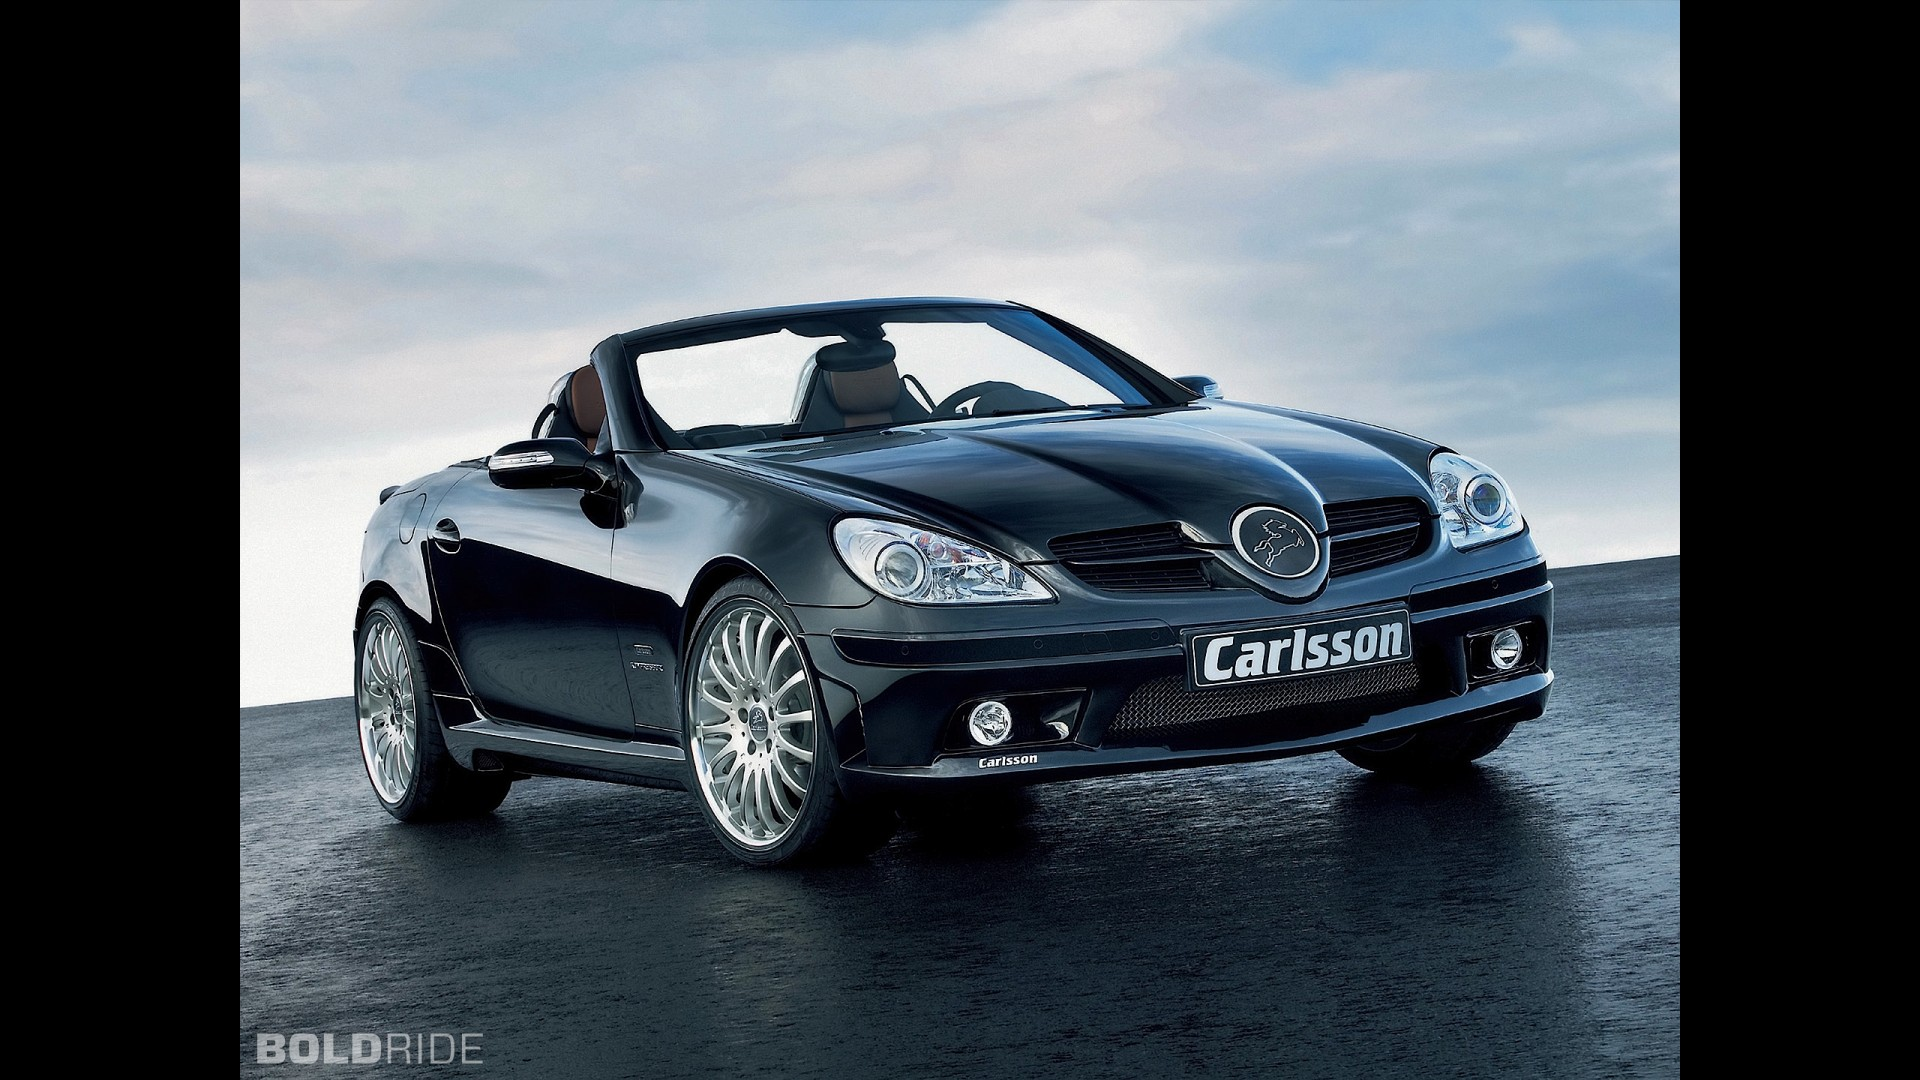 carlsson ck35 mercedes benz slk 350. Black Bedroom Furniture Sets. Home Design Ideas